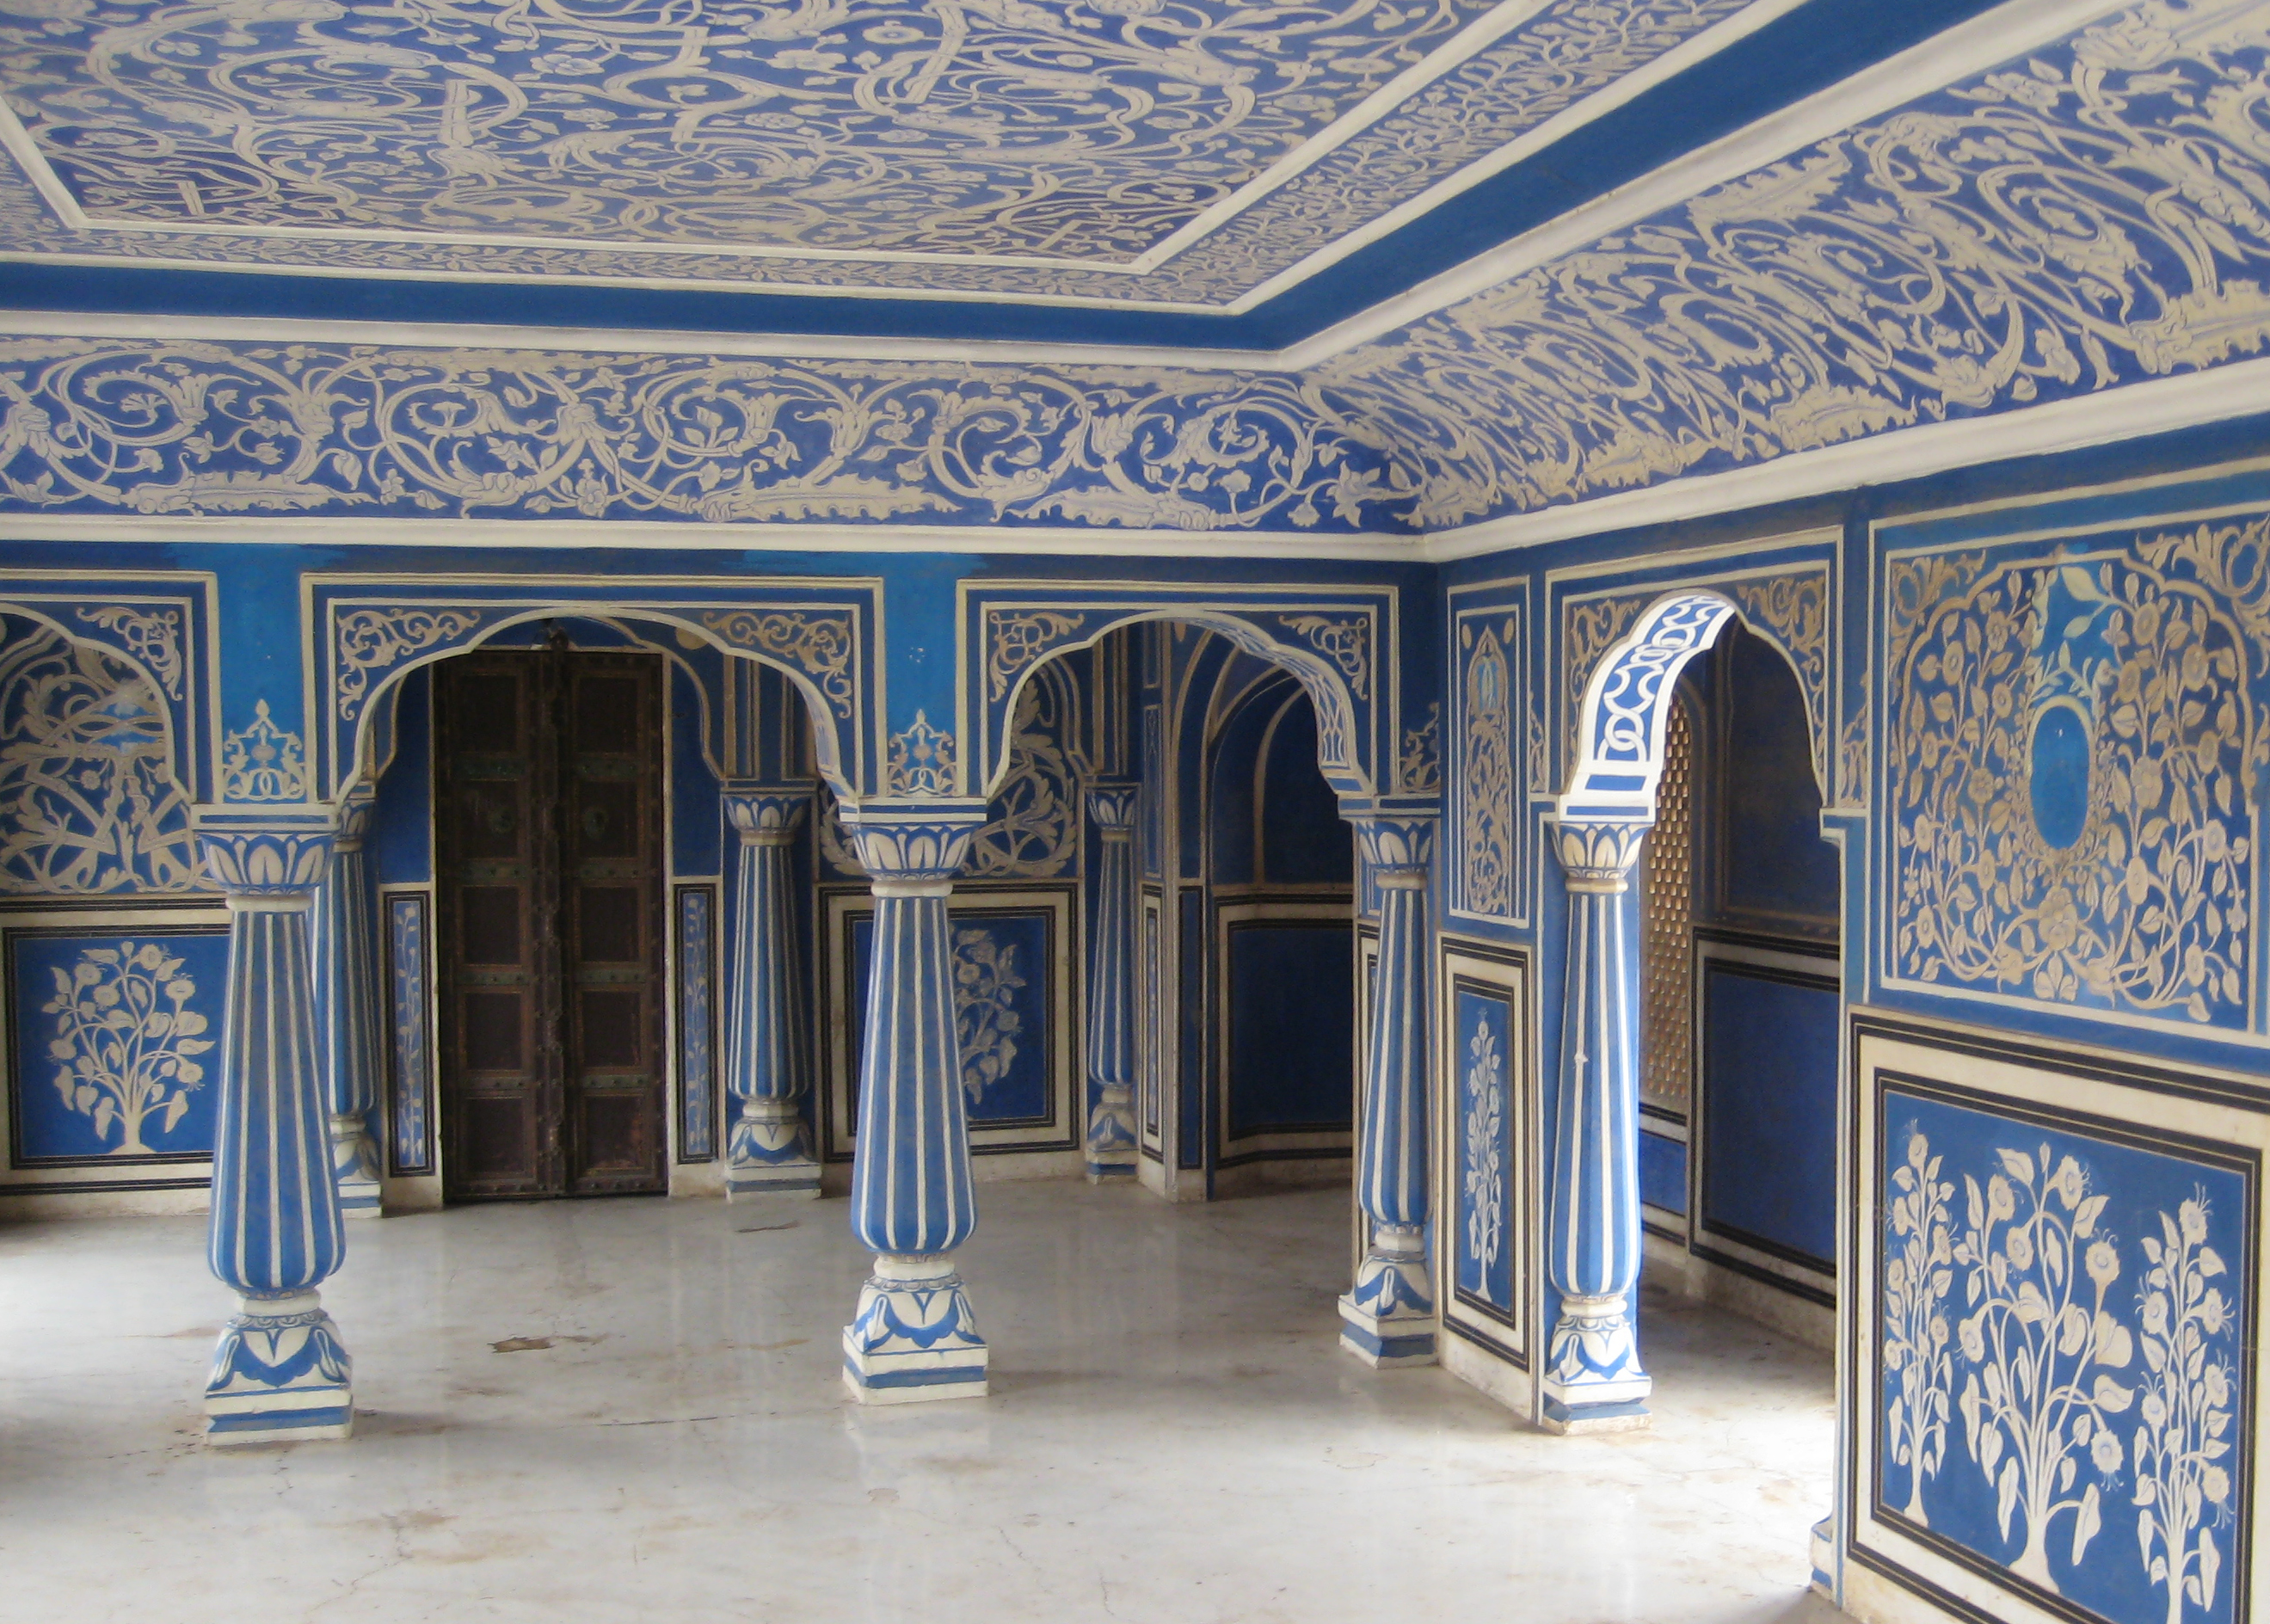 City palace jaipur historical facts and pictures the for Image city interiors